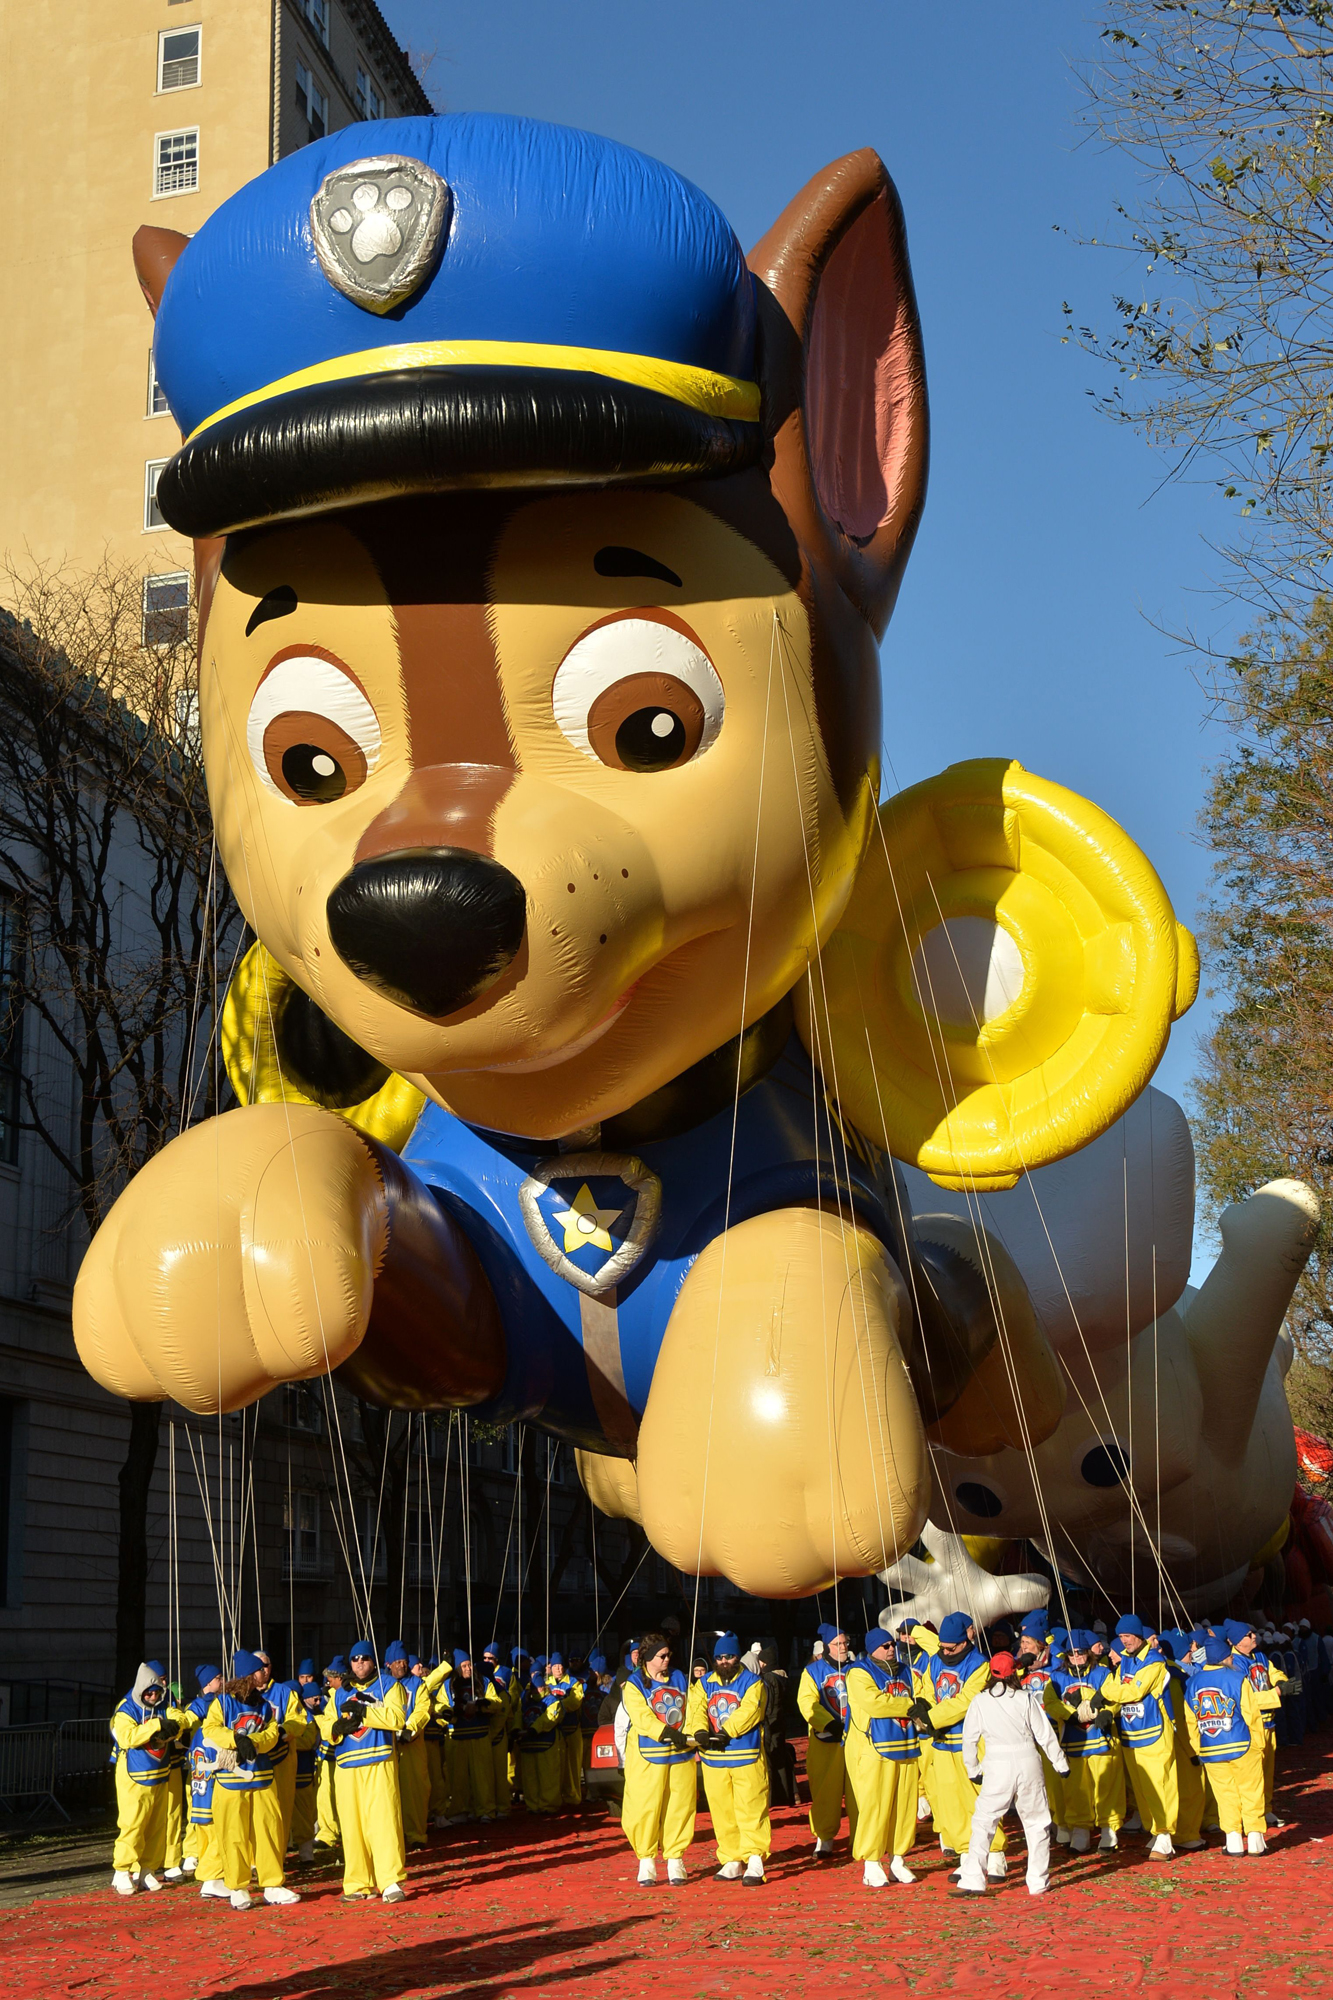 Macy's Thanksgiving Day Parade, New York, USA - 22 Nov 2018